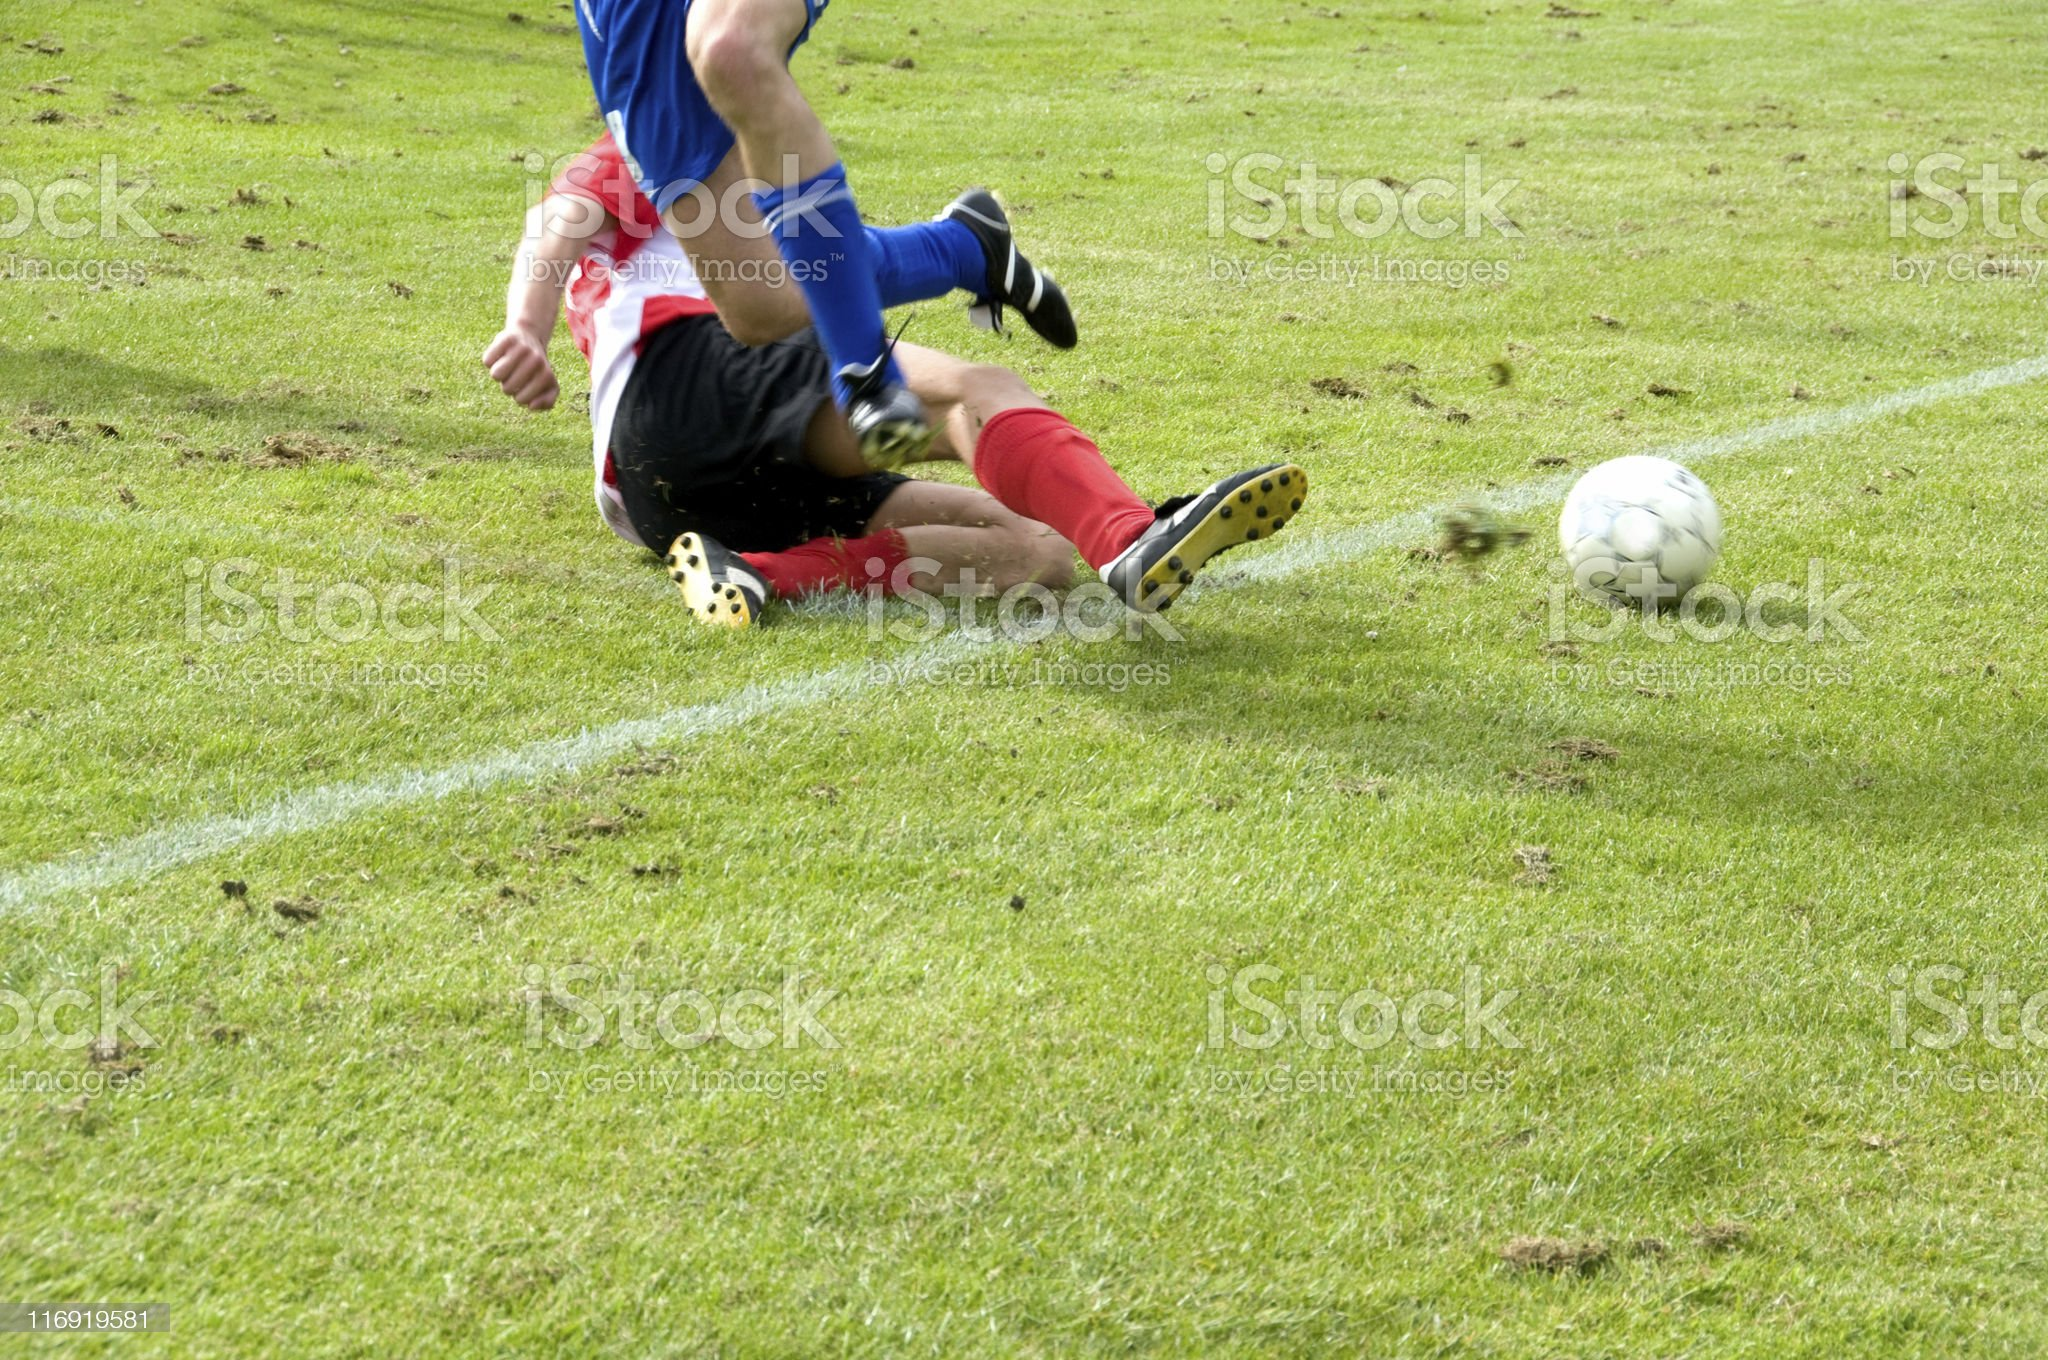 Voilent soccer tackle makes football player fall royalty-free stock photo